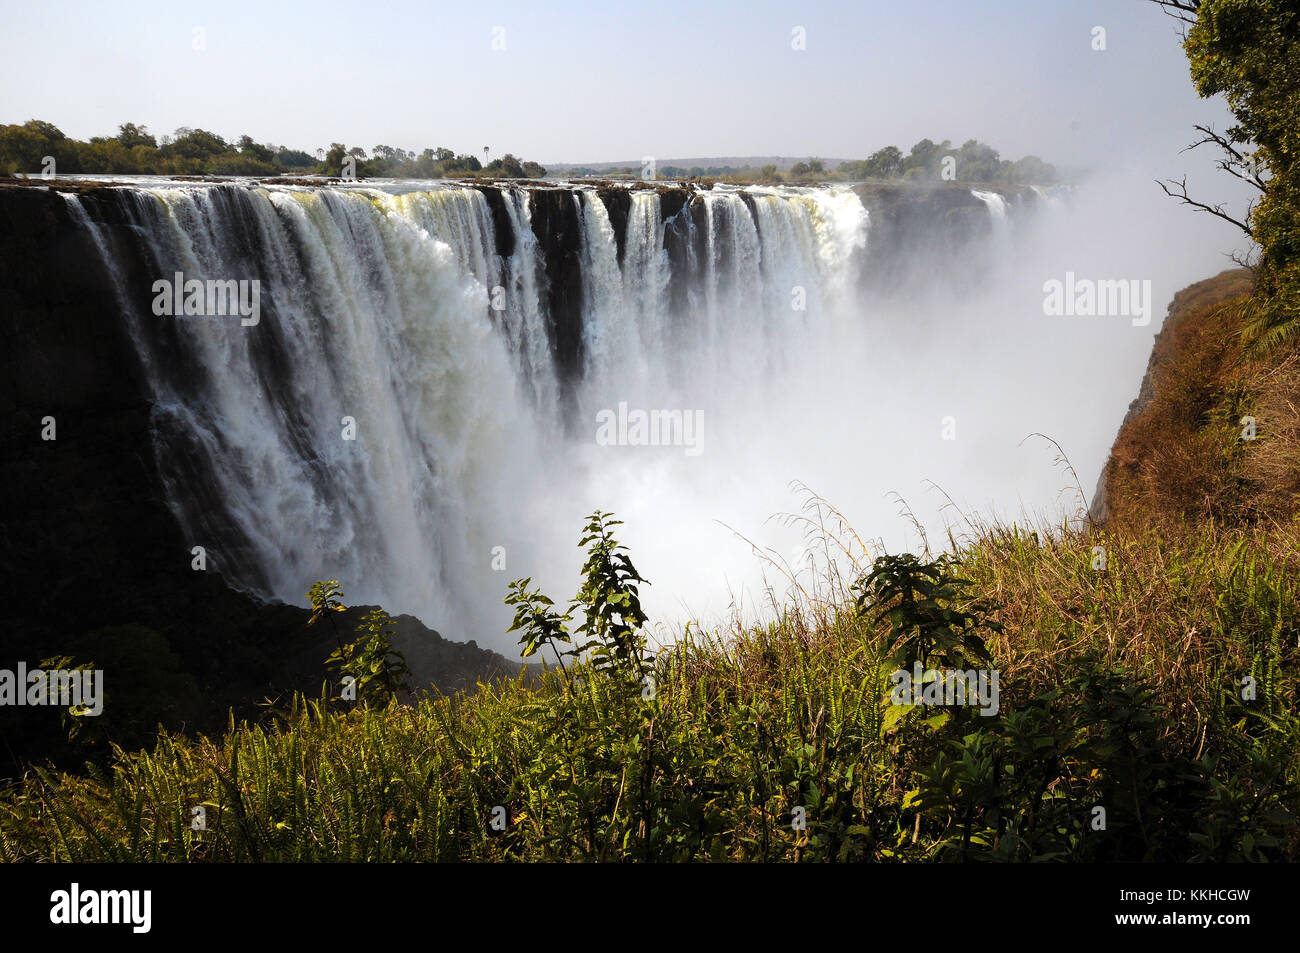 Victoria Falls, Zimbabwe. 30th July, 2015. The so-called 'main falls' at the Victoria Falls, pictured on - Stock Image